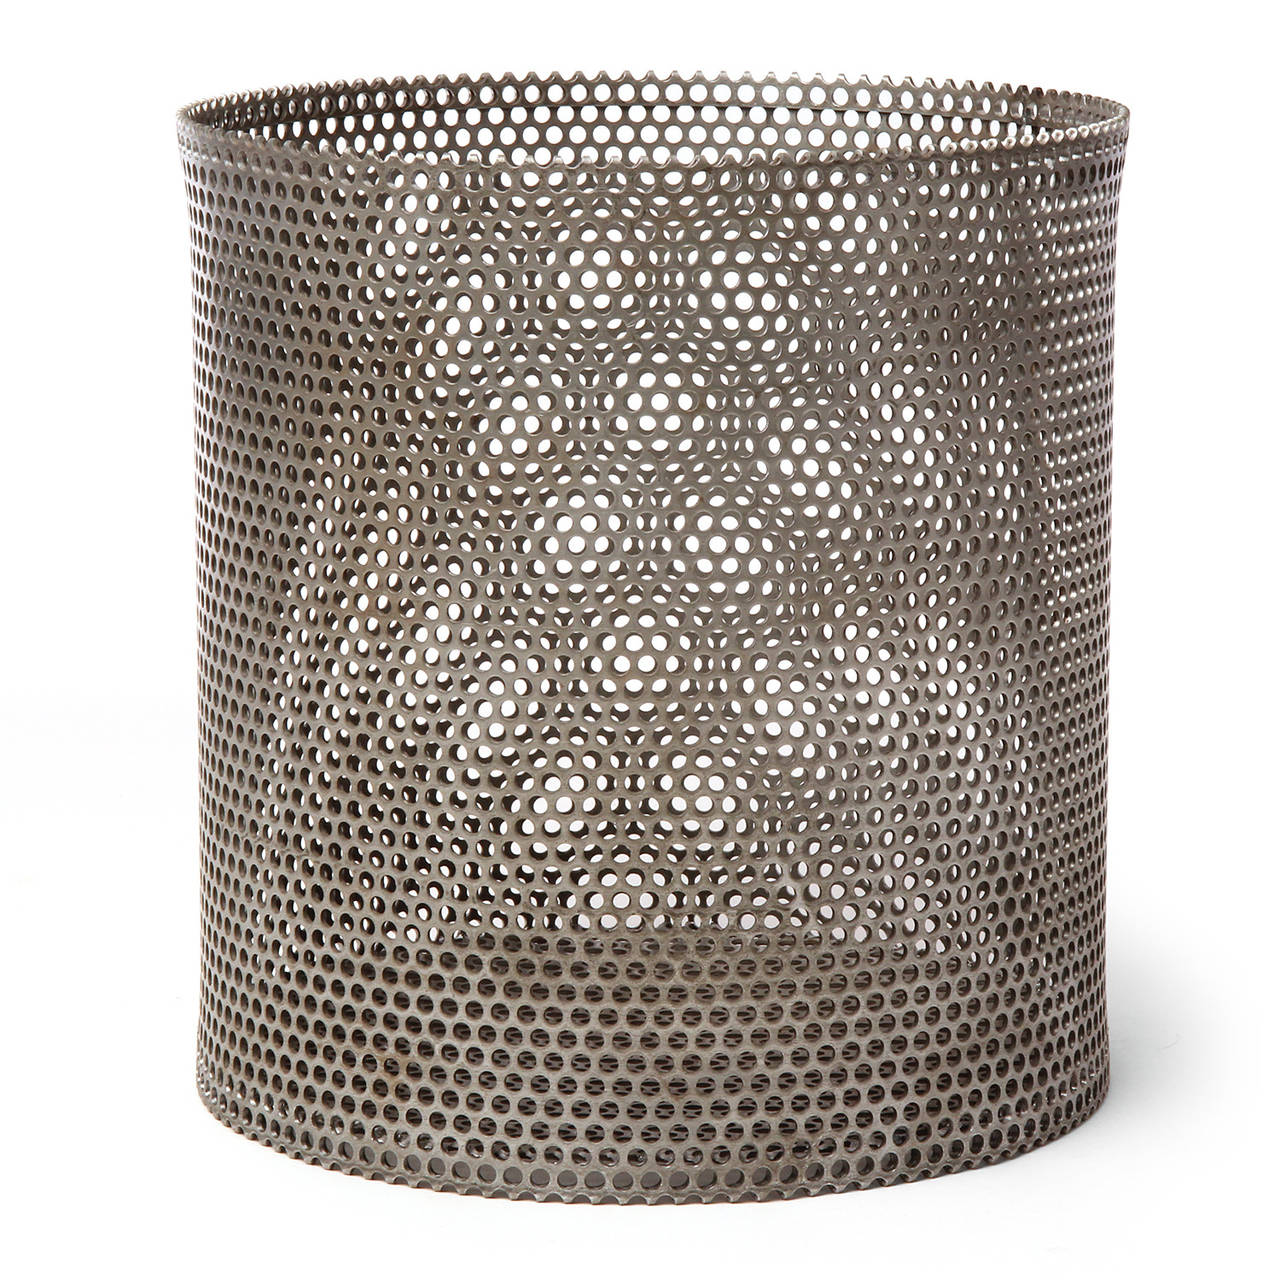 A beautifully crafted, generously scaled and masterfully Minimalist waste receptacle having a spare cylindrical form and made of heavy-gauge perforated rolled steel.